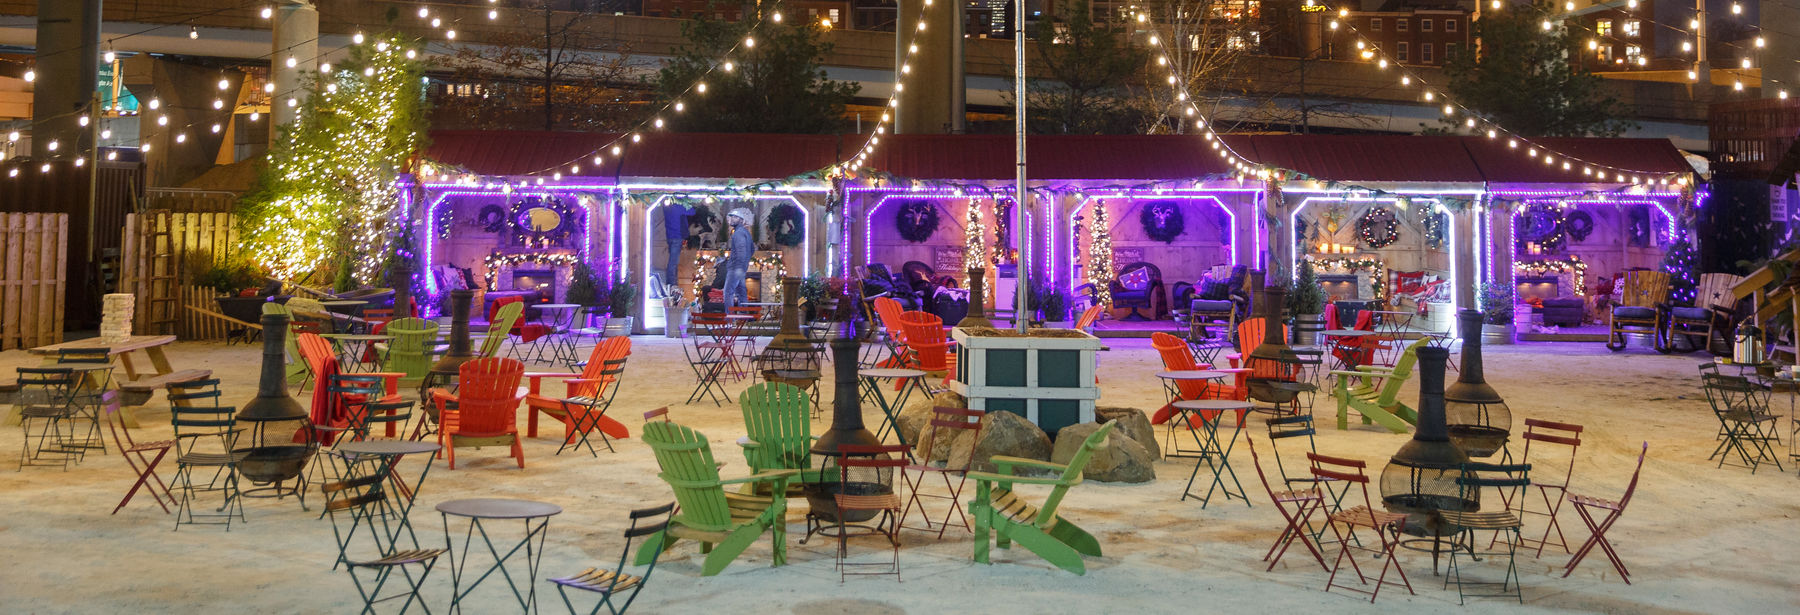 Fire Pits and Winter Warming Cottages at Blue Cross RiverRink Winterfest